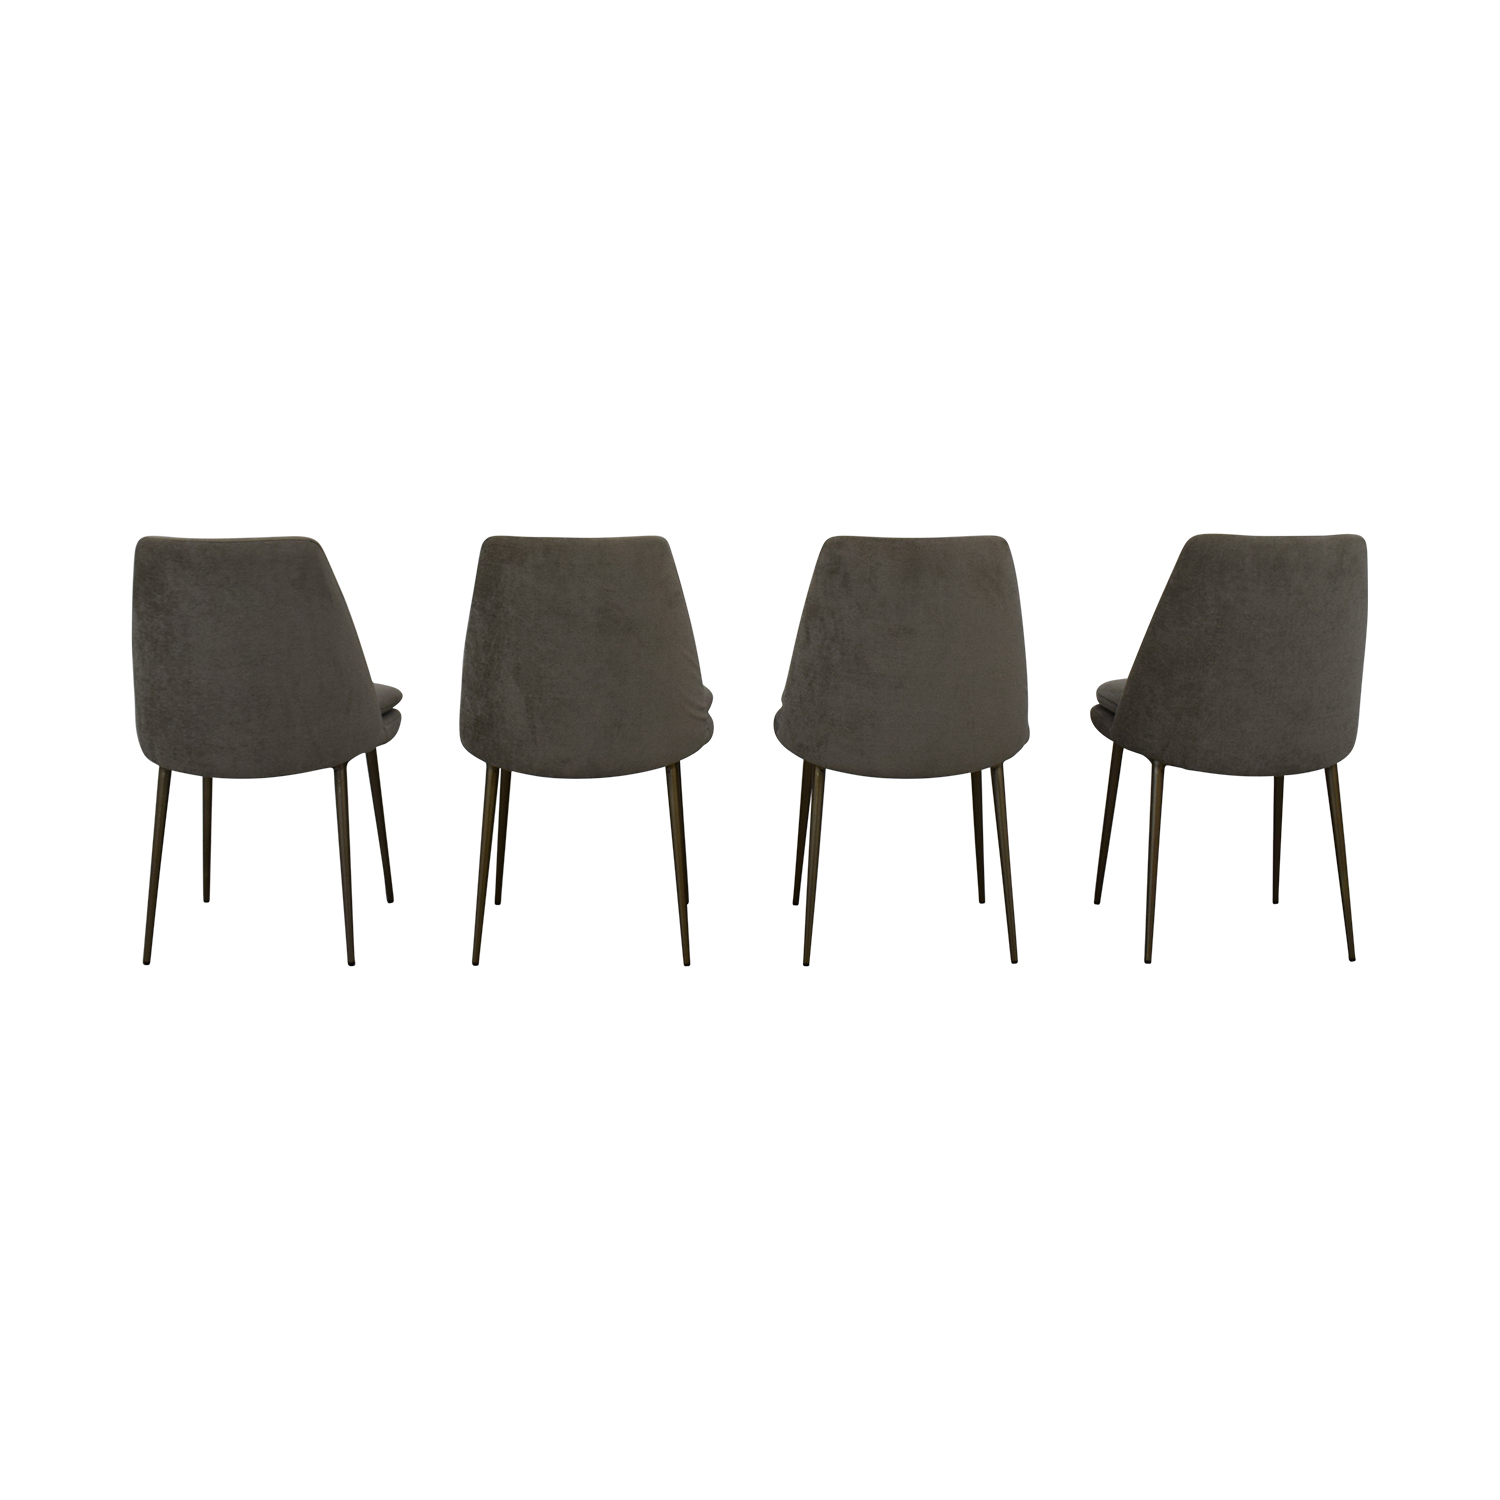 West Elm West Elm Finley Low Back Dining Chairs Dining Chairs